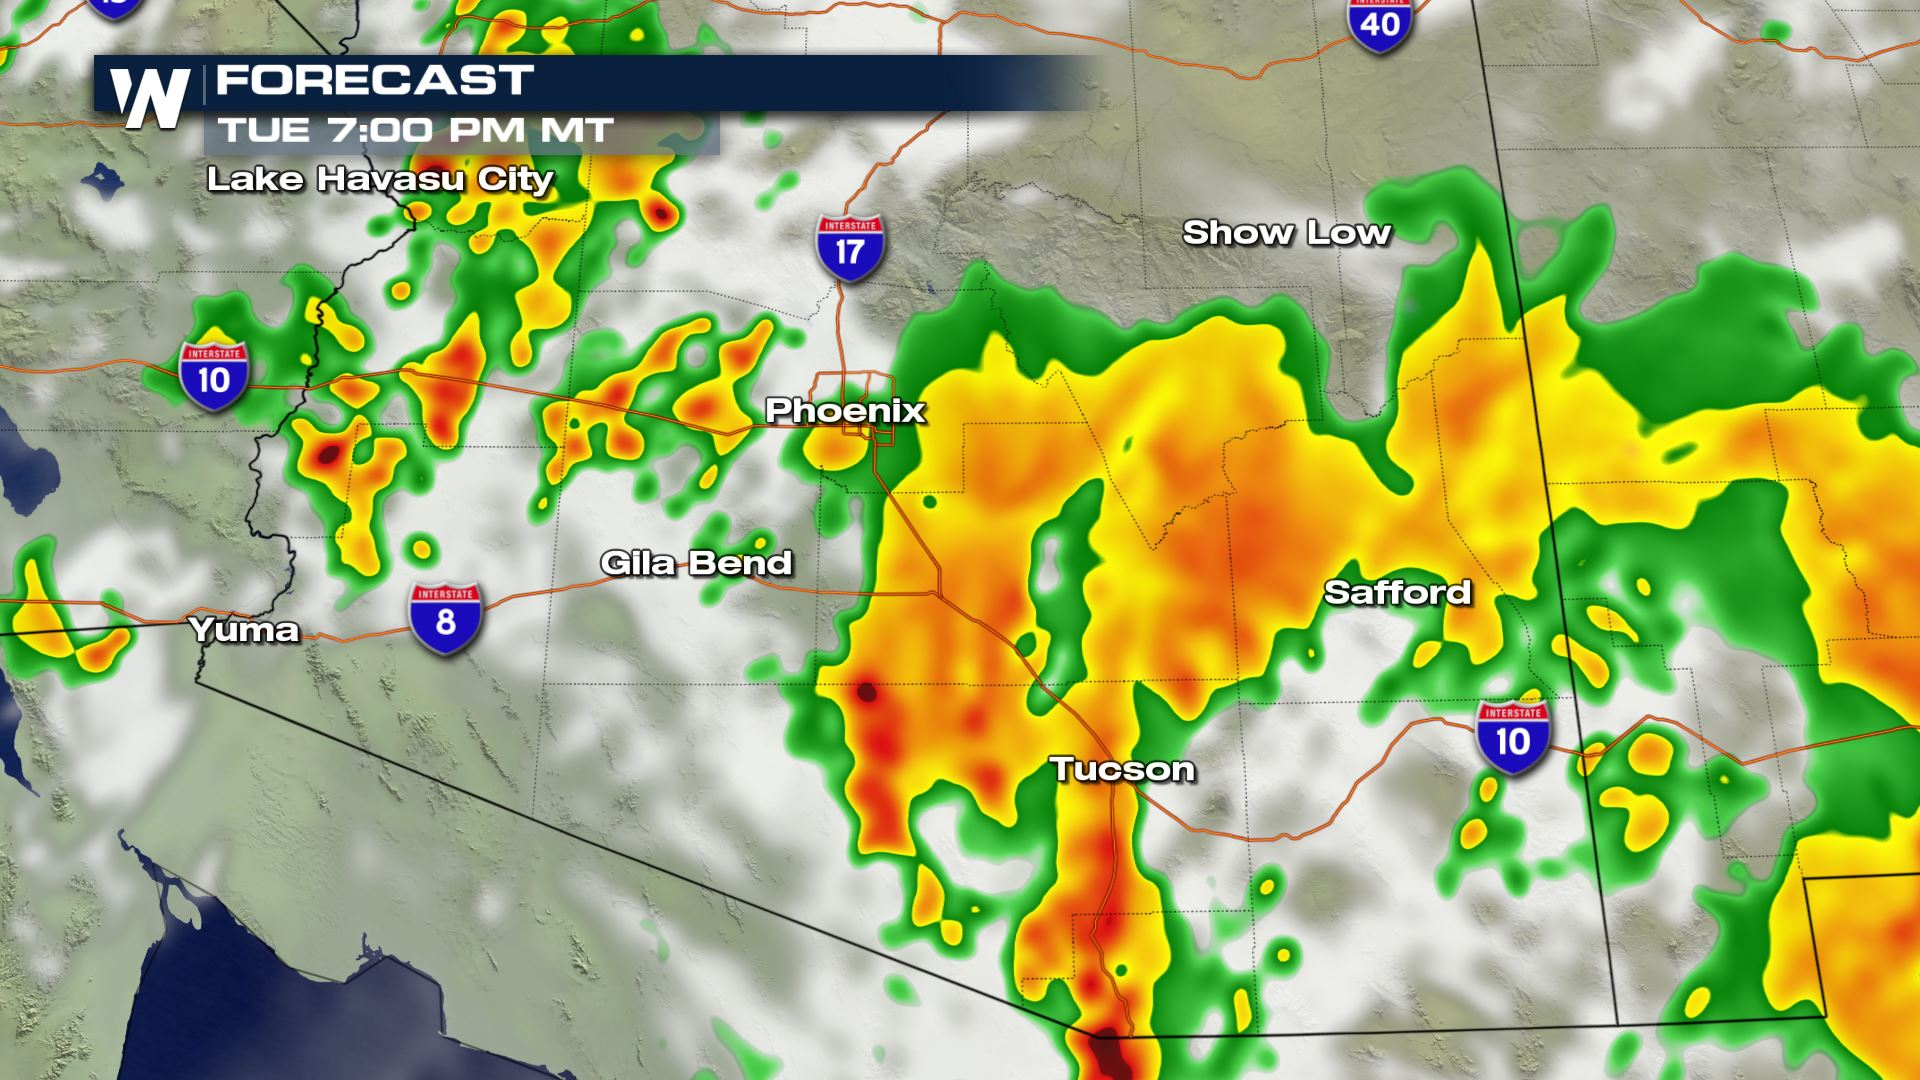 Isolated Severe Storms for Southern Arizona Tuesday